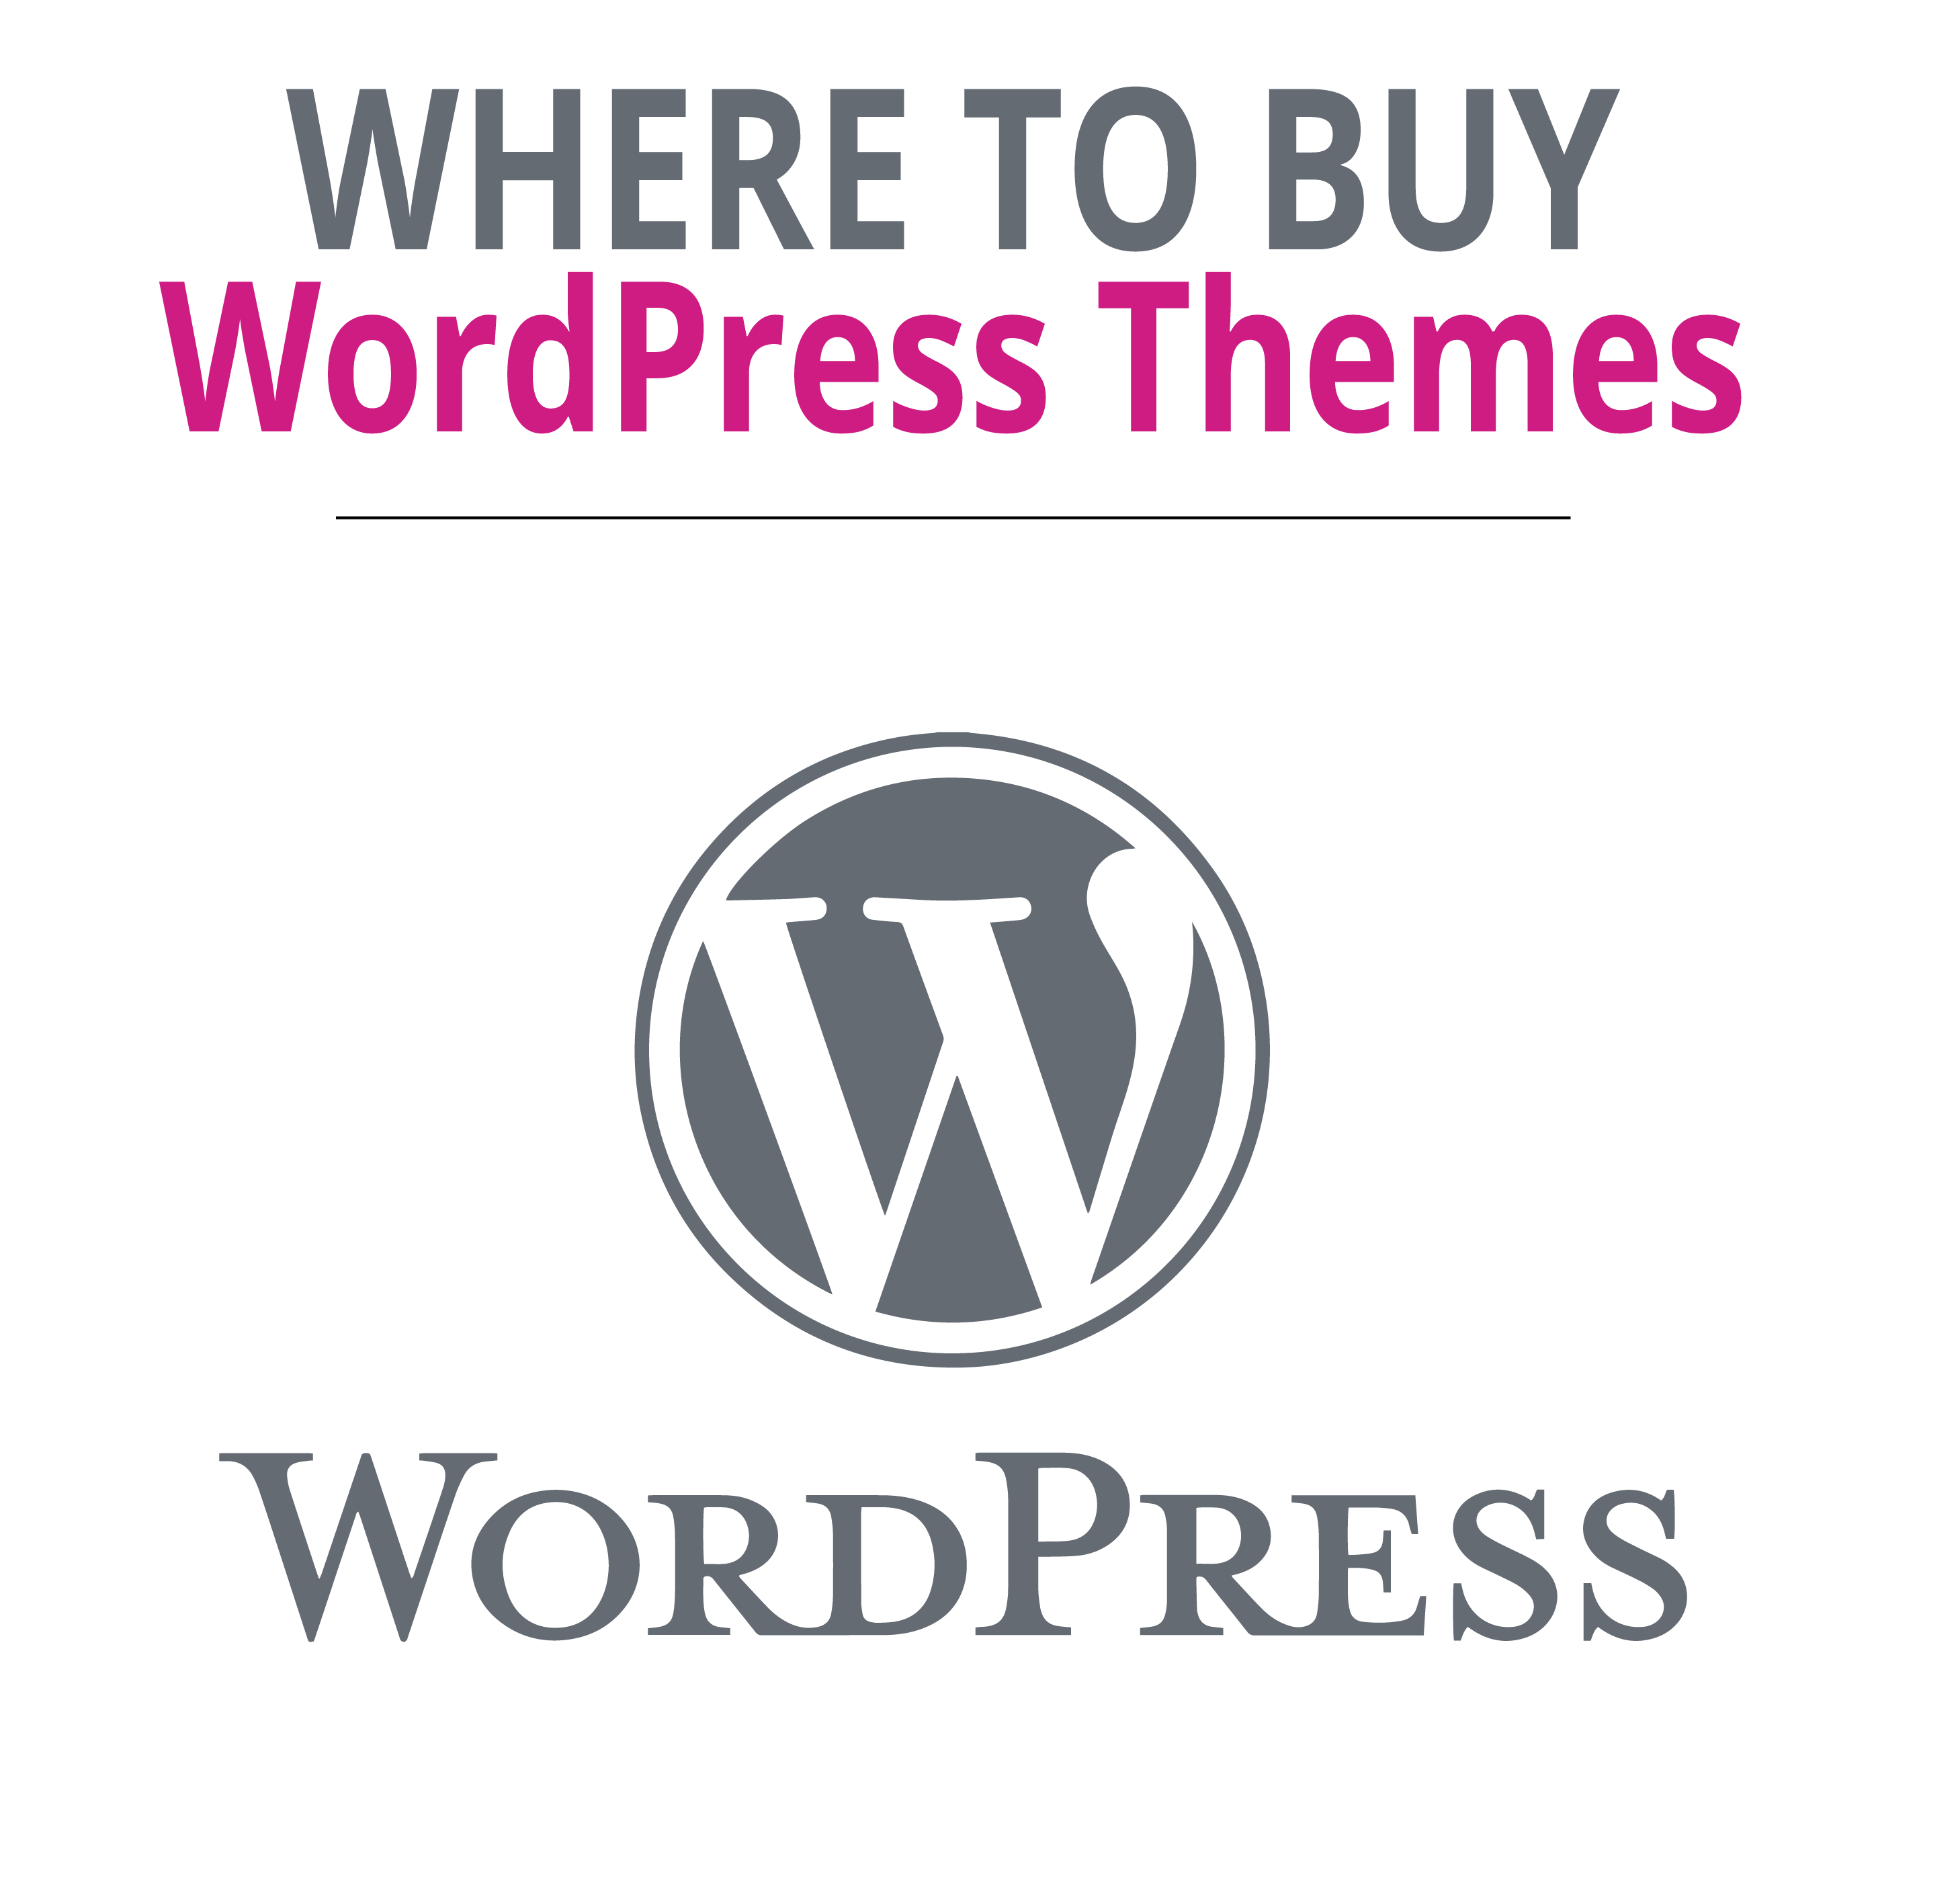 where-to-buy-wordpress-themes